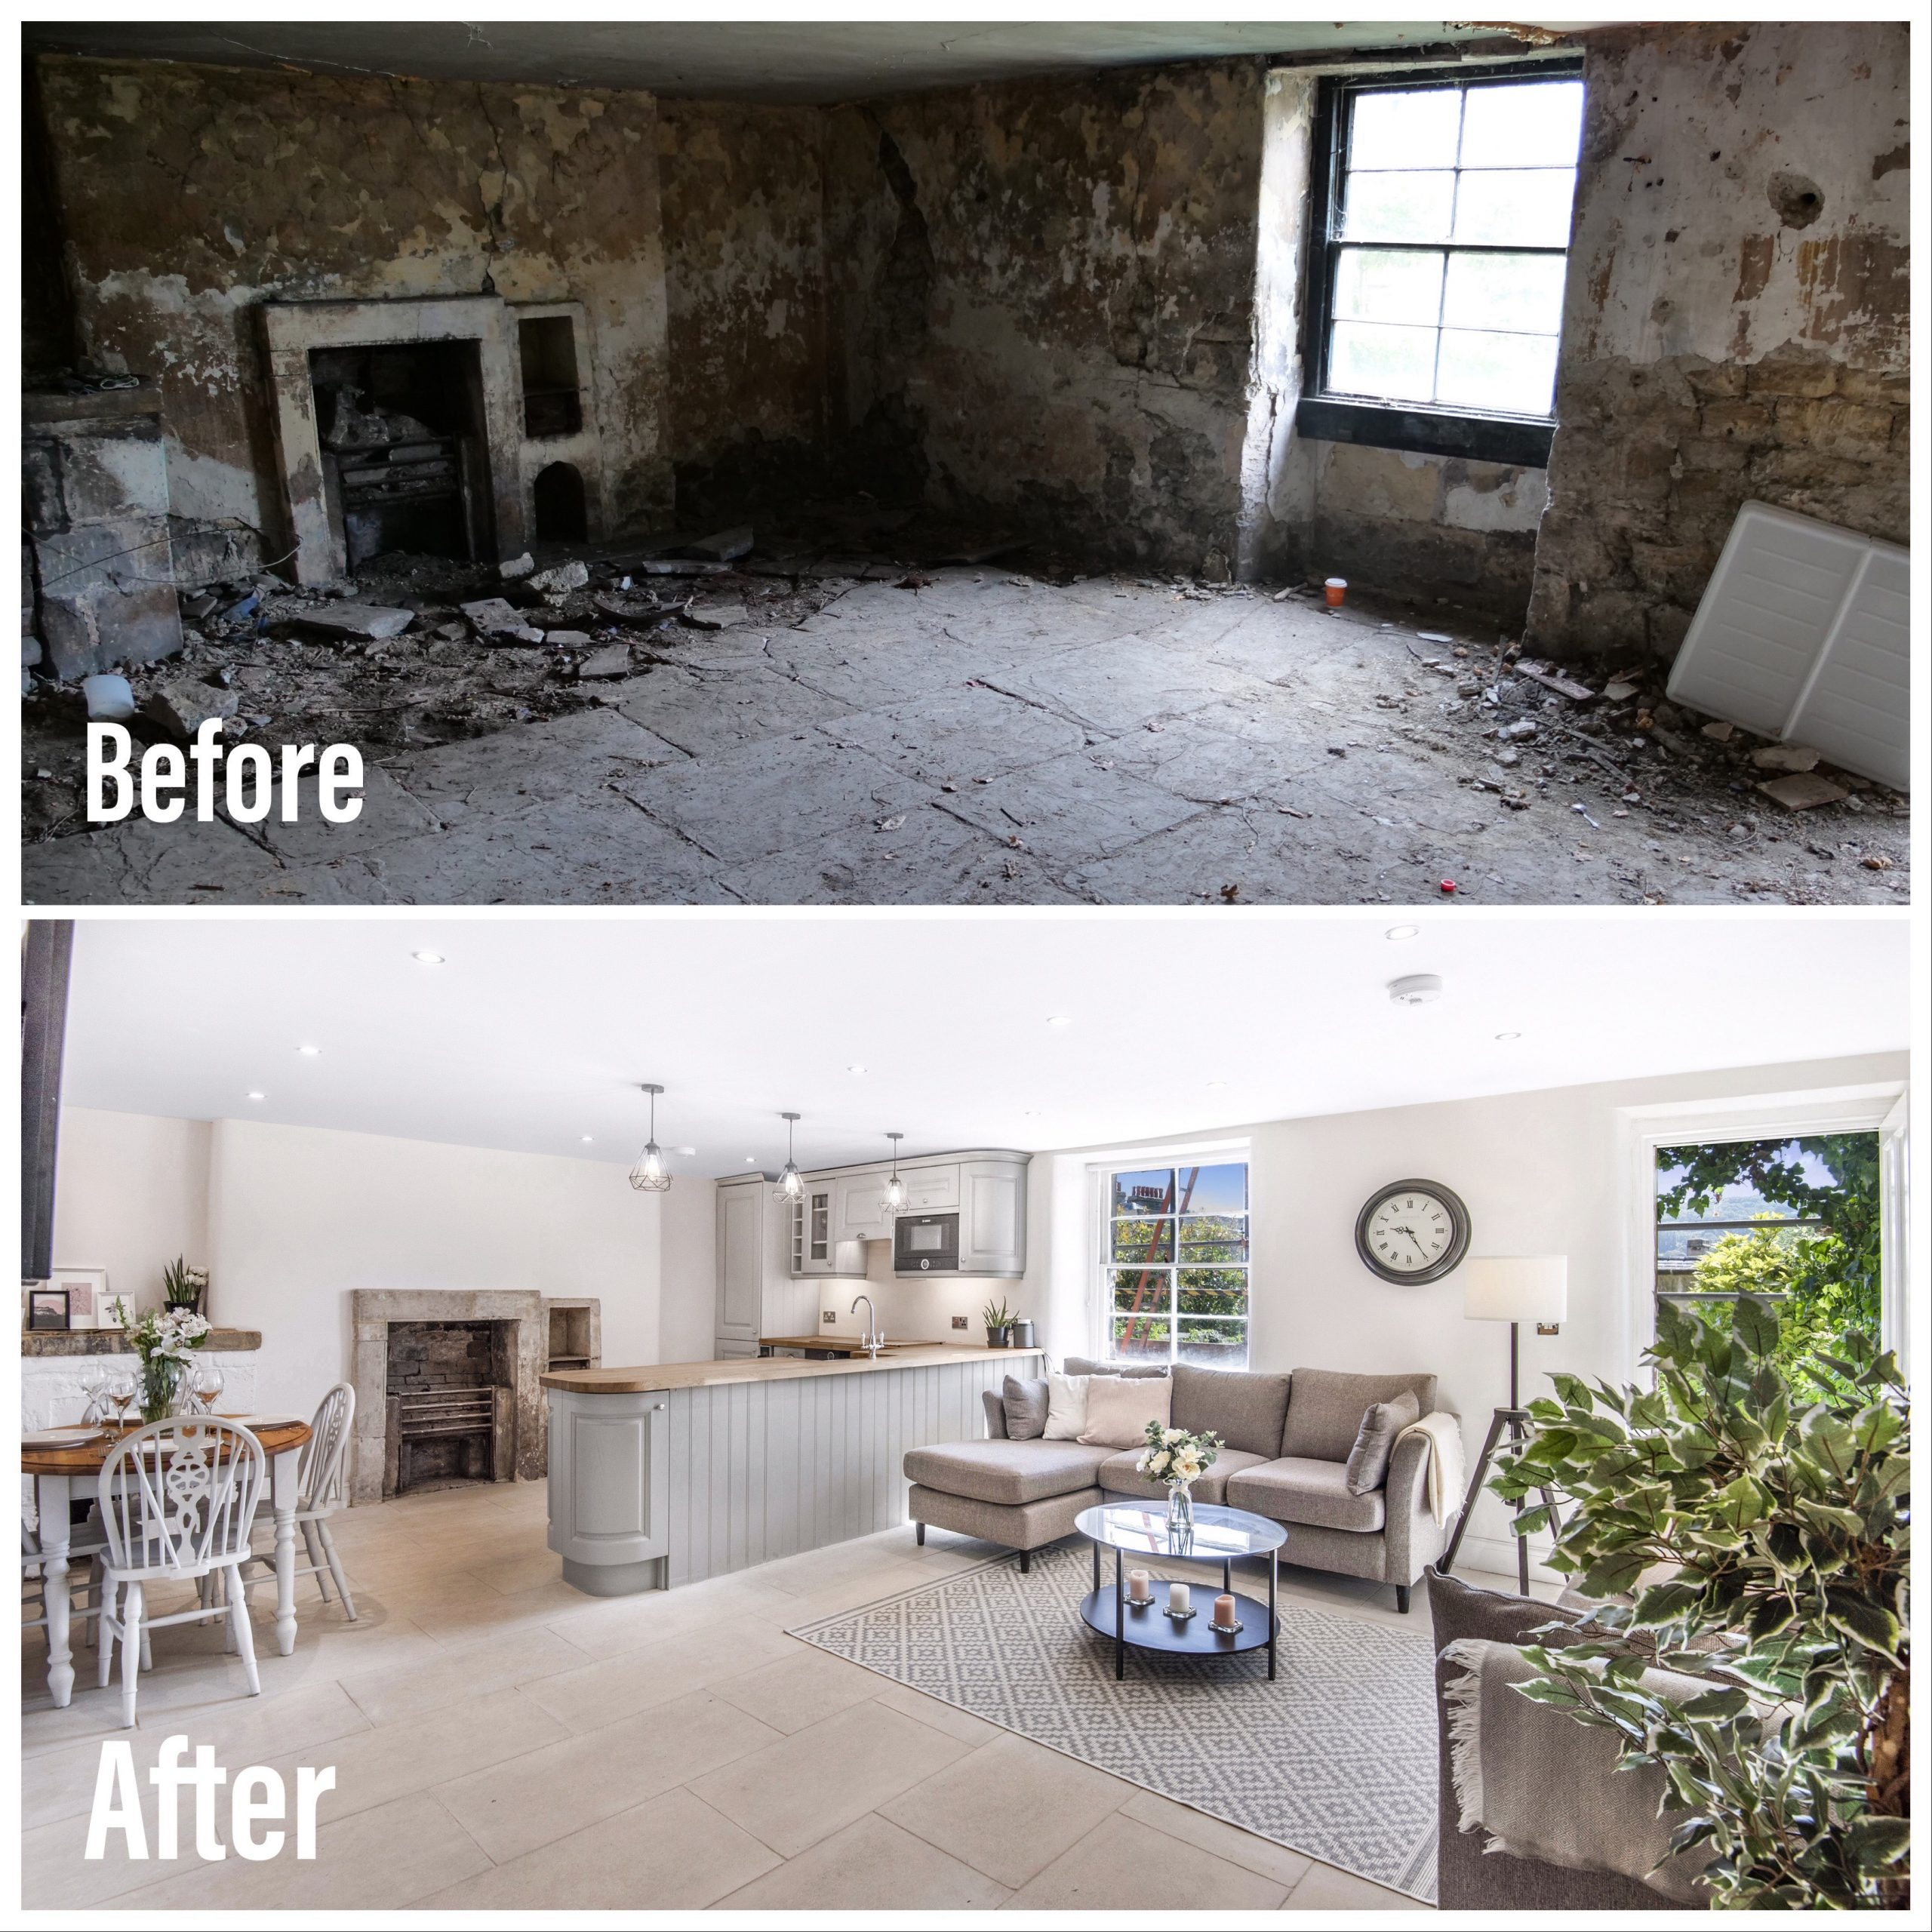 The kitchen and living area of this Grade I Listed bath property have been transformed